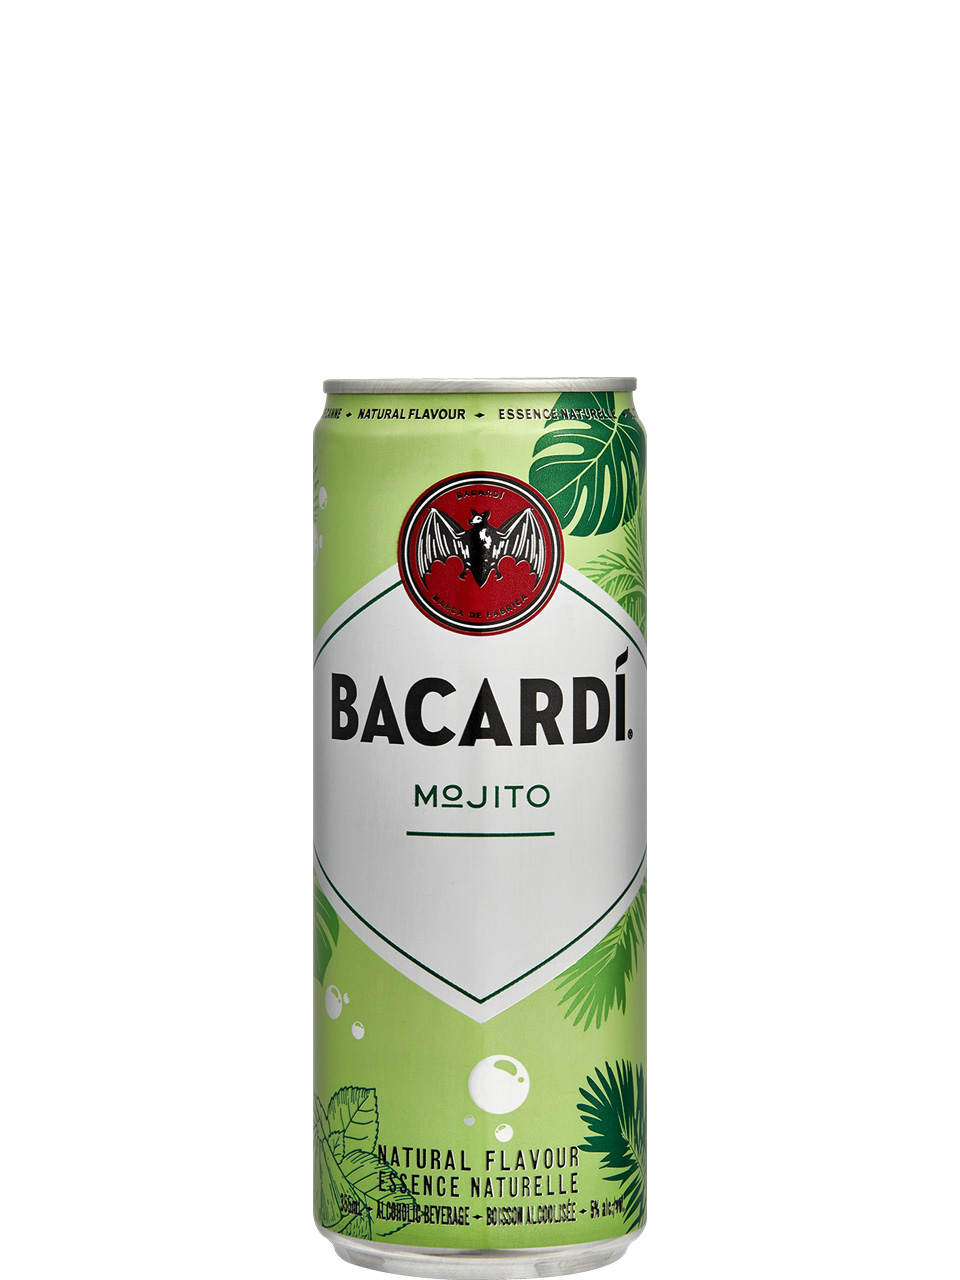 Bacardi Mojito 6 Pack Cans